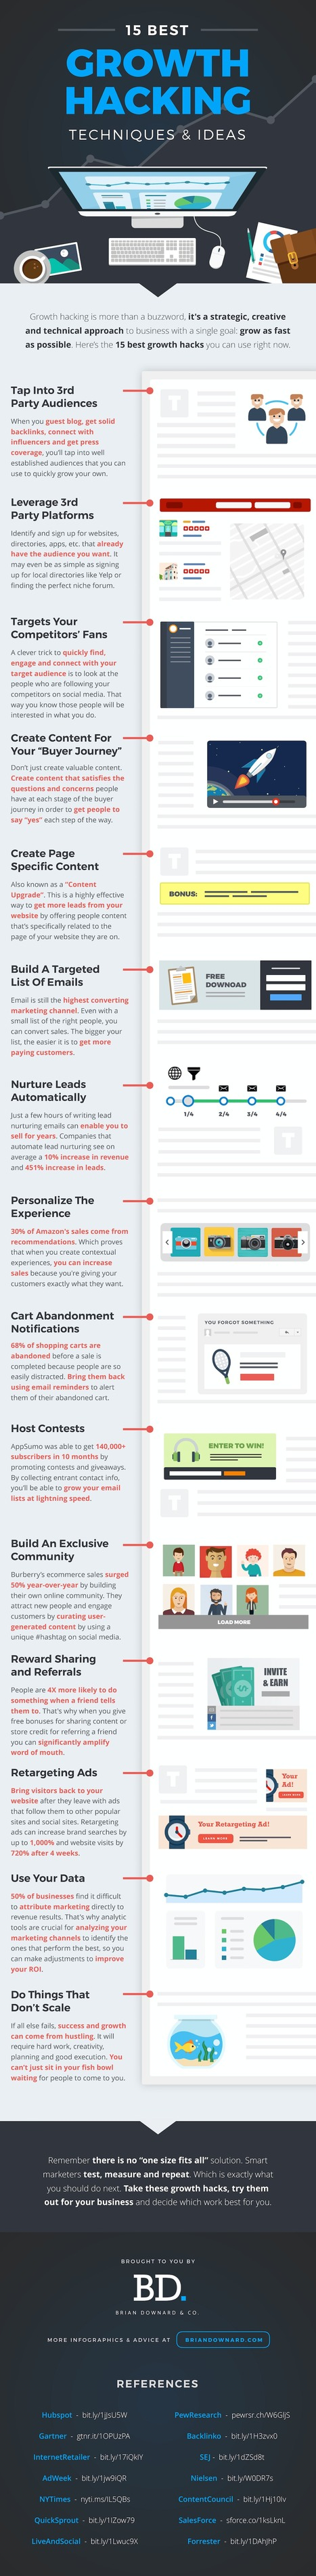 15 Best Growth Hacking Techniques & Ideas (Infographic) - Brian Downard | Residual Income Mastery | Scoop.it